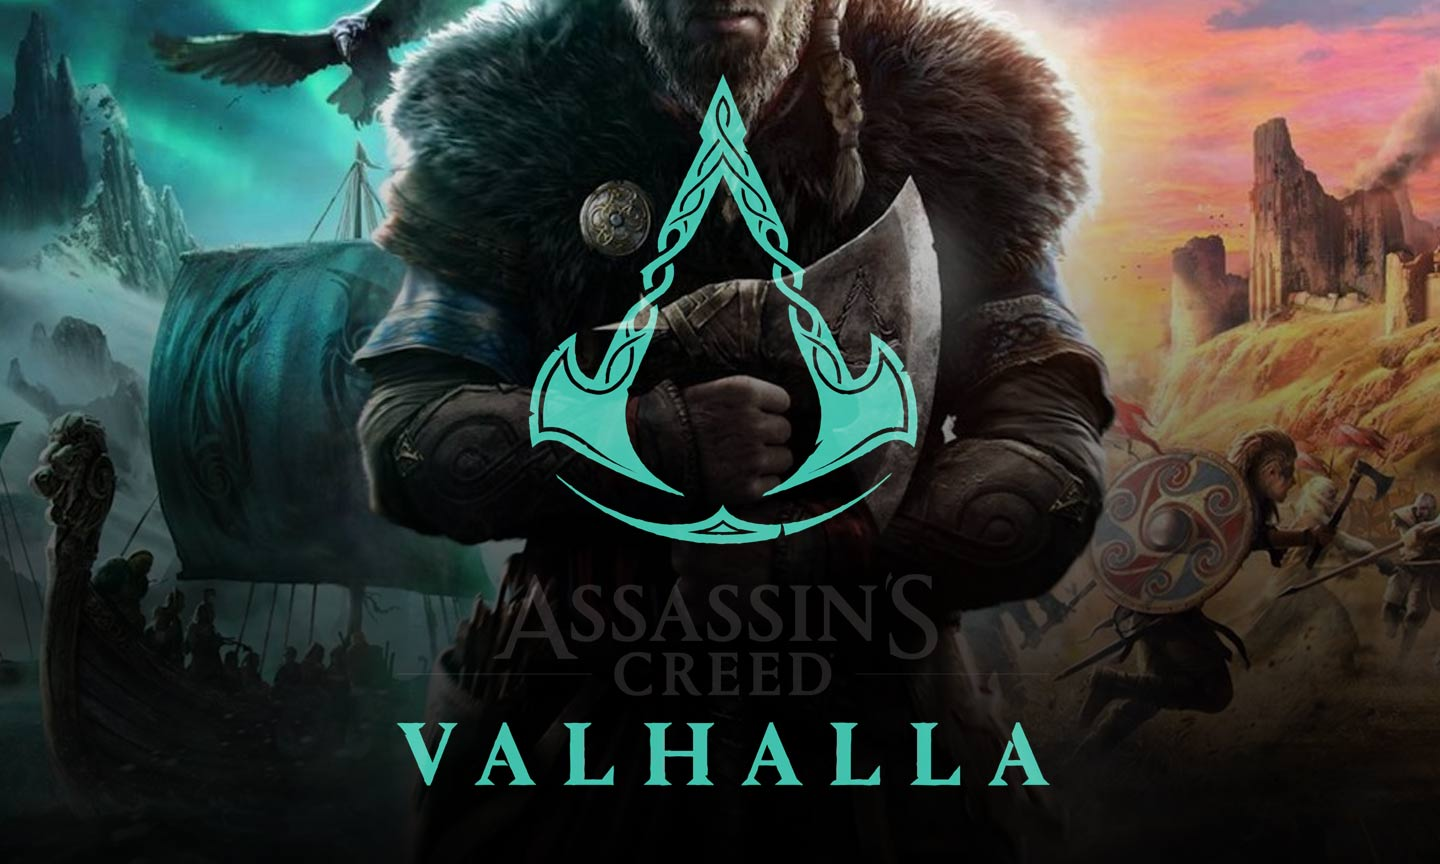 Assassin's Creed Valhalla - (C) Ubisoft